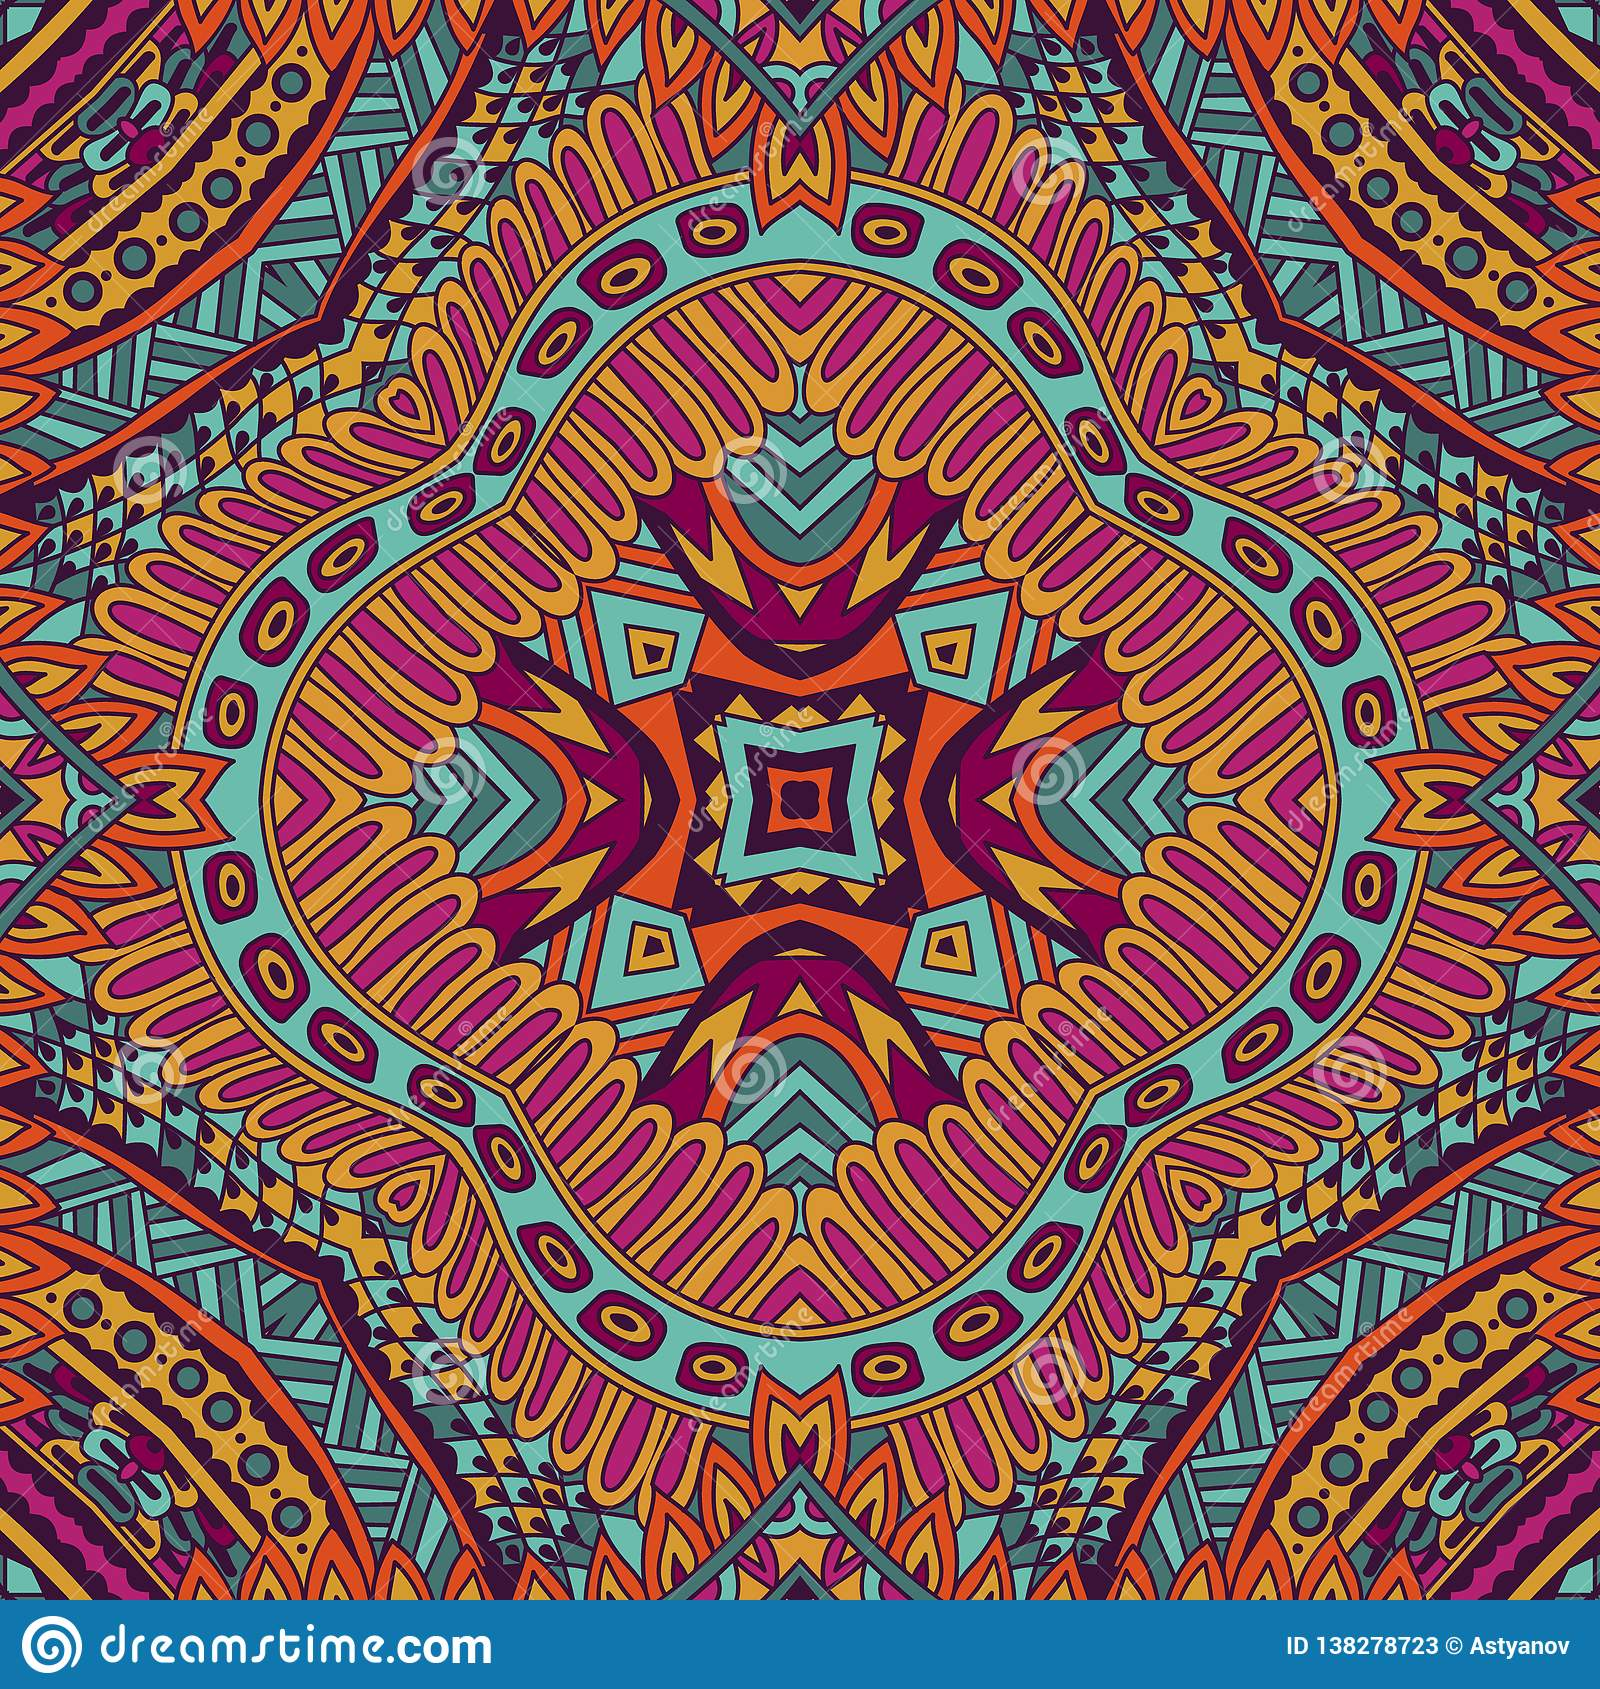 516c12c14b8af Aztec Fancy Abstract Geometric Art Print Thnic Hipster Backdrop ...